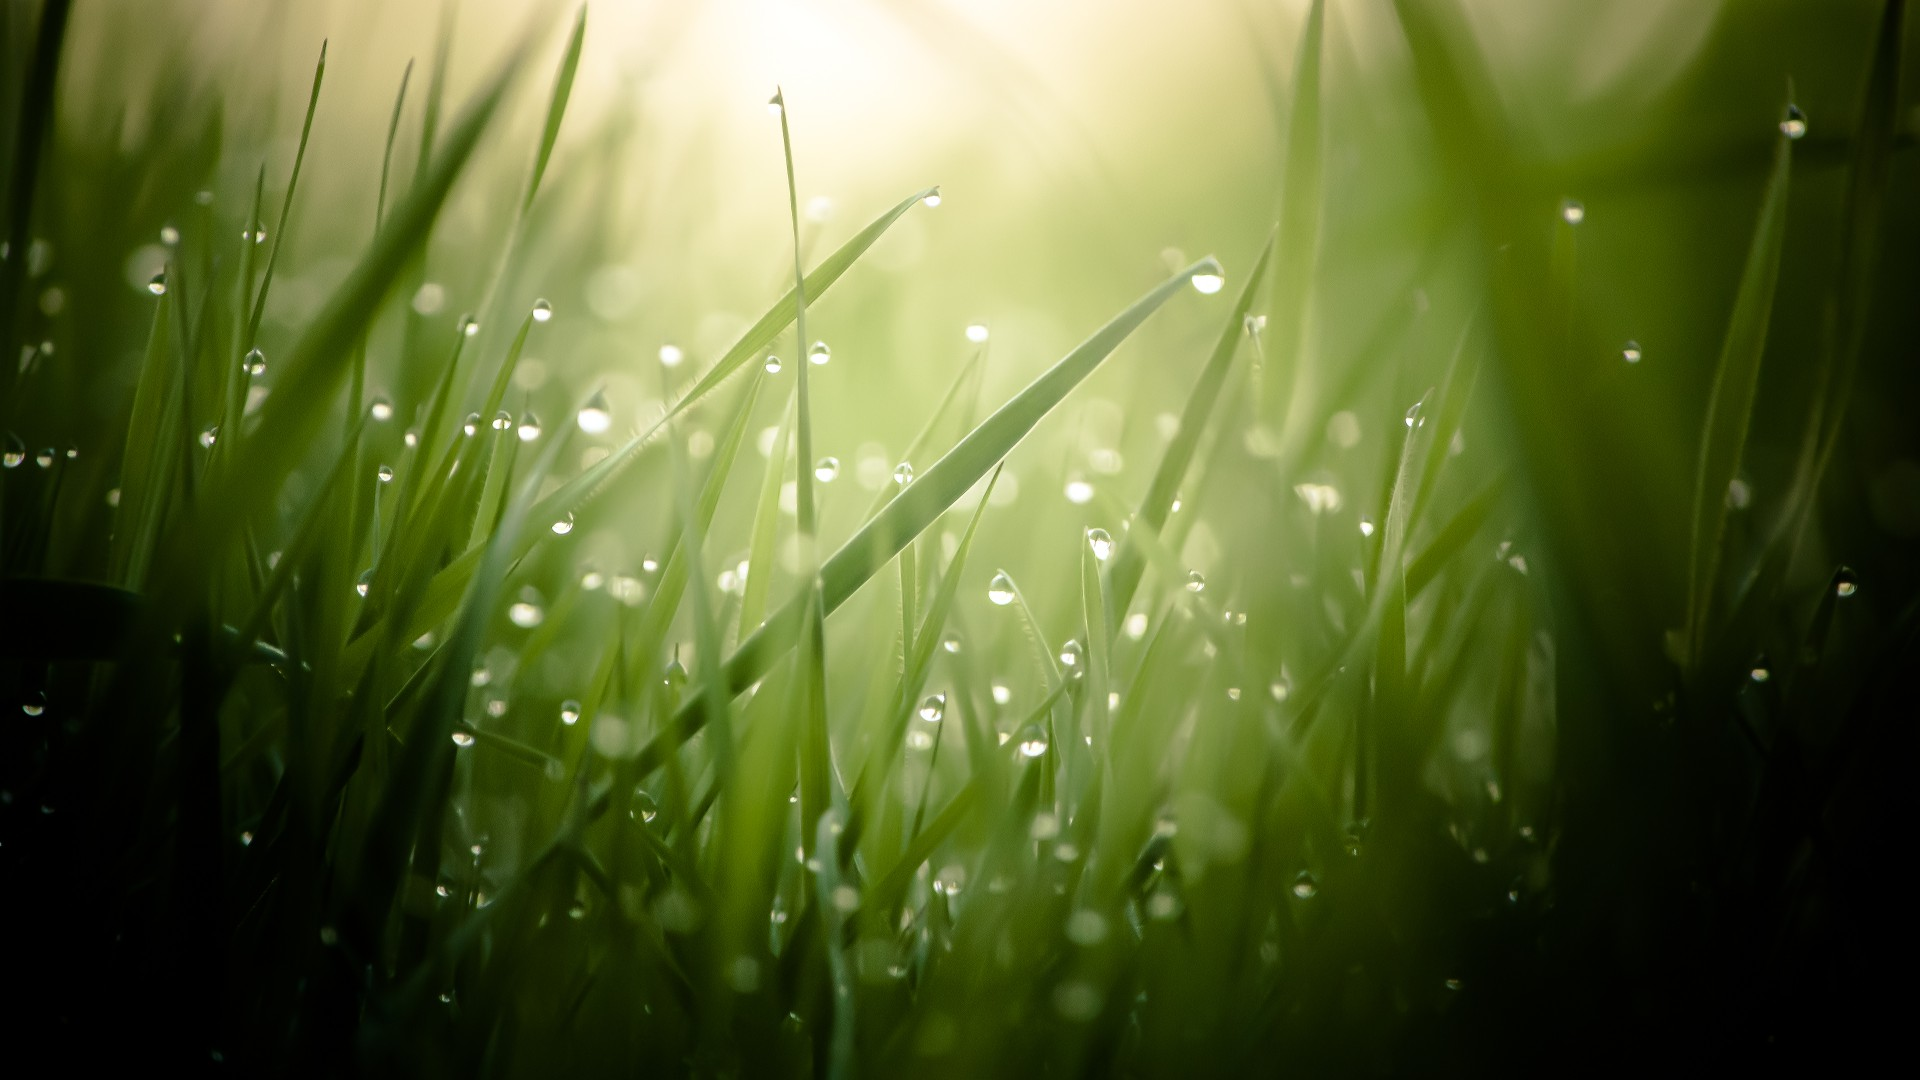 wallpaper grass, 4k, hd wallpaper, green, drops, dew, sun, rays